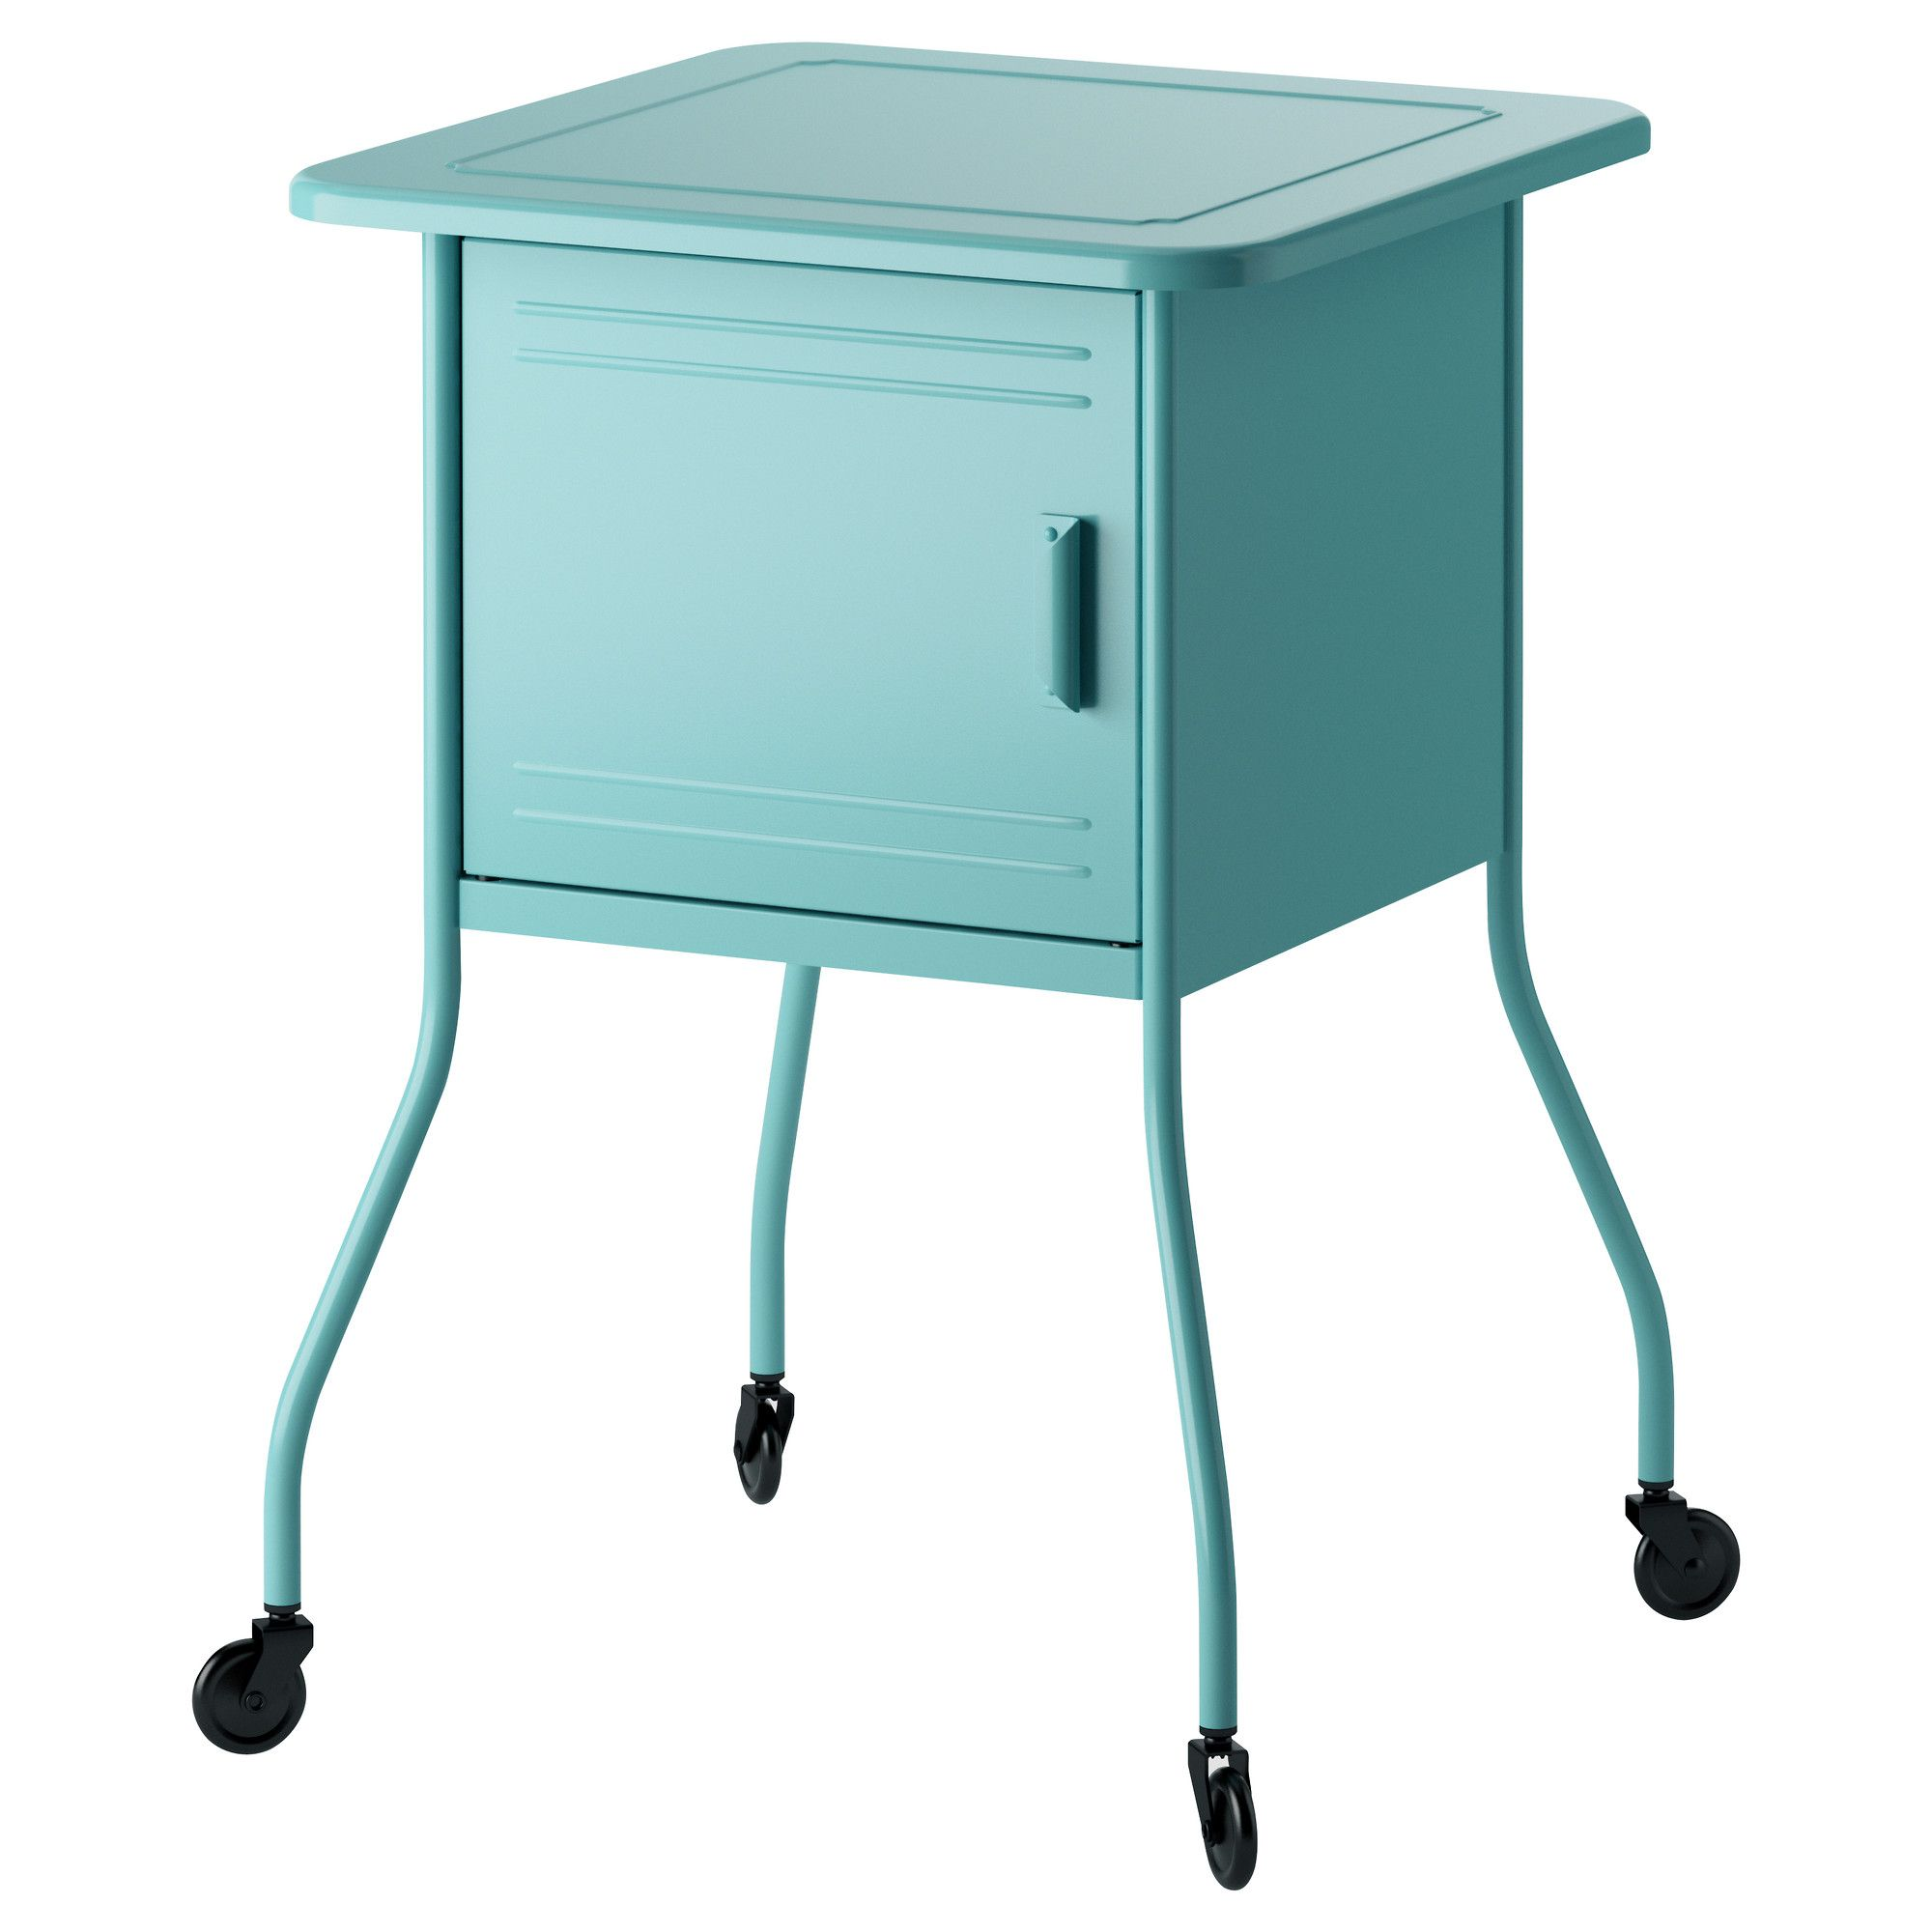 vettre nightstand ikea door can go on either way there s a ikea vettre bedside table turquoise cm inside there is room for an extension socket for your chargers